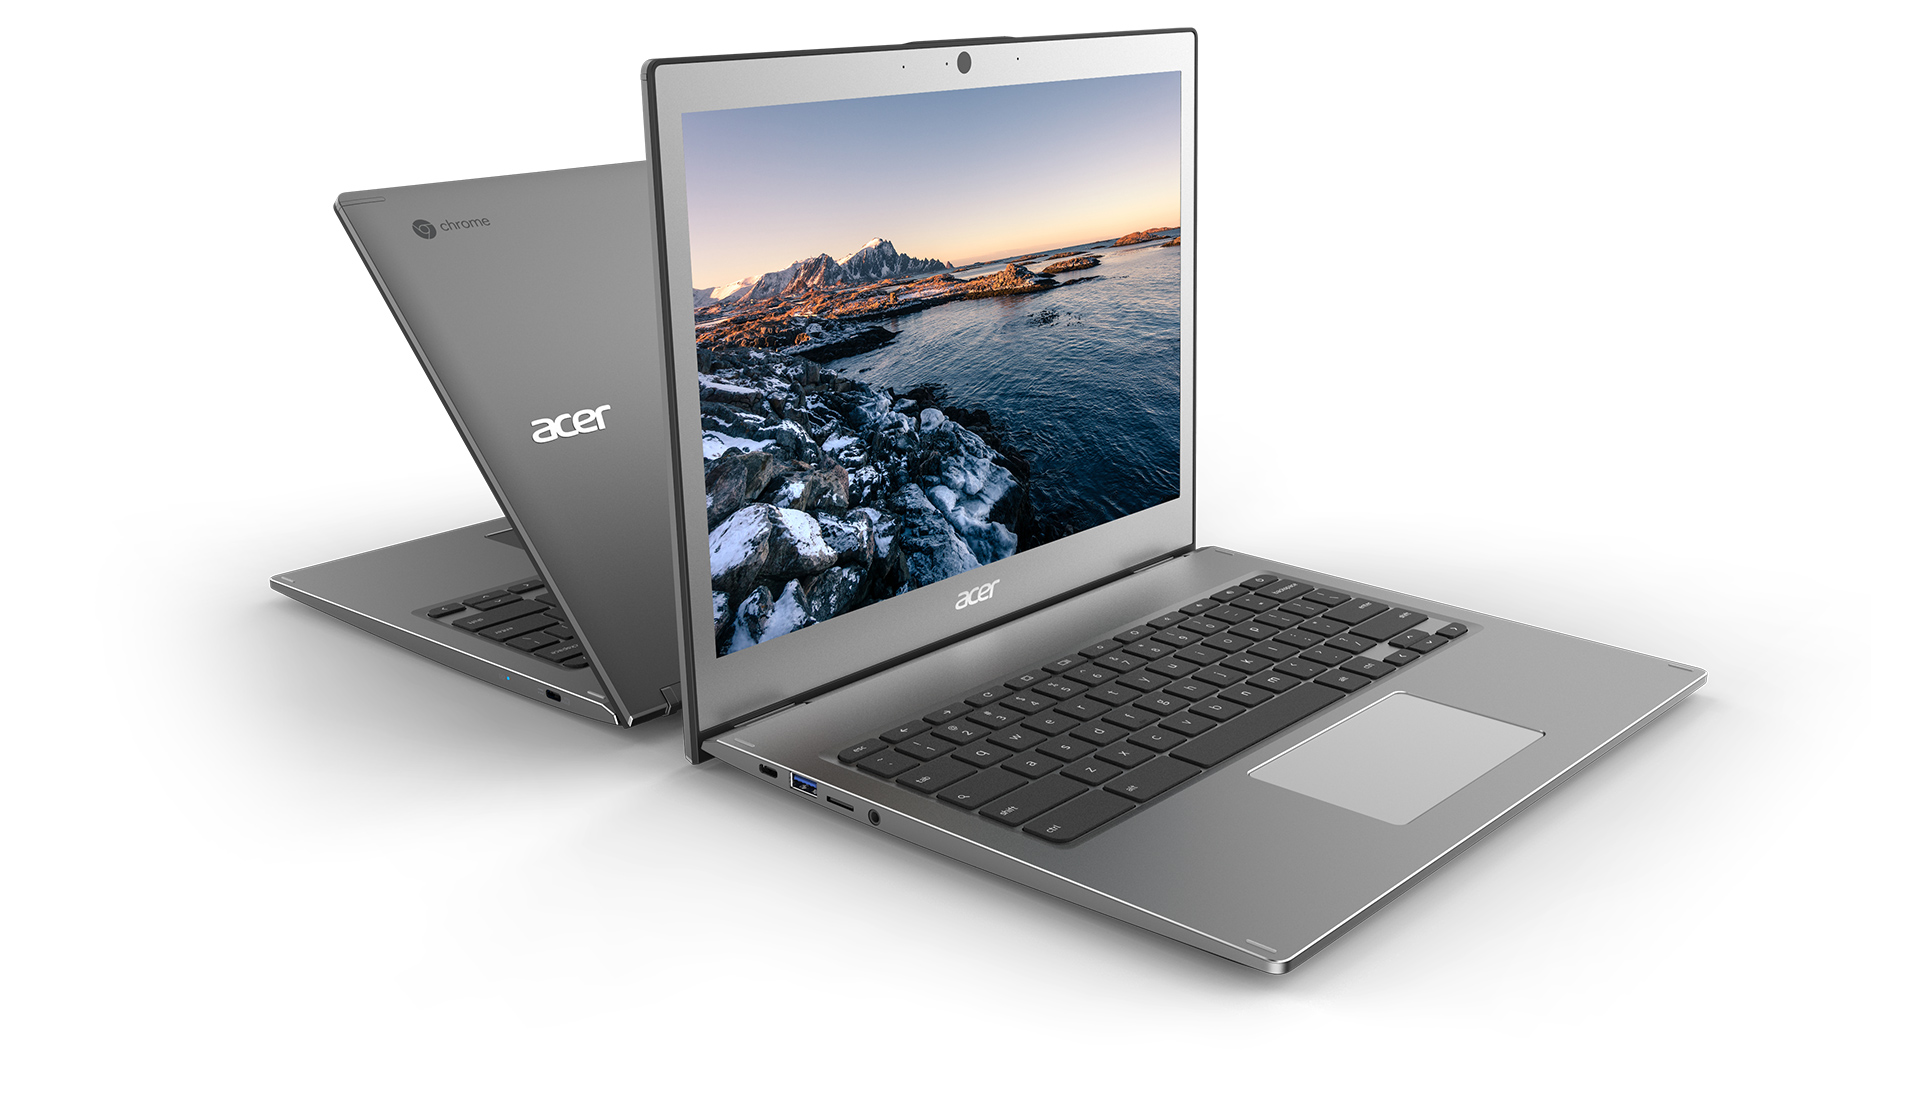 Acer Chromebook 13 - CB713 - More Height - Large